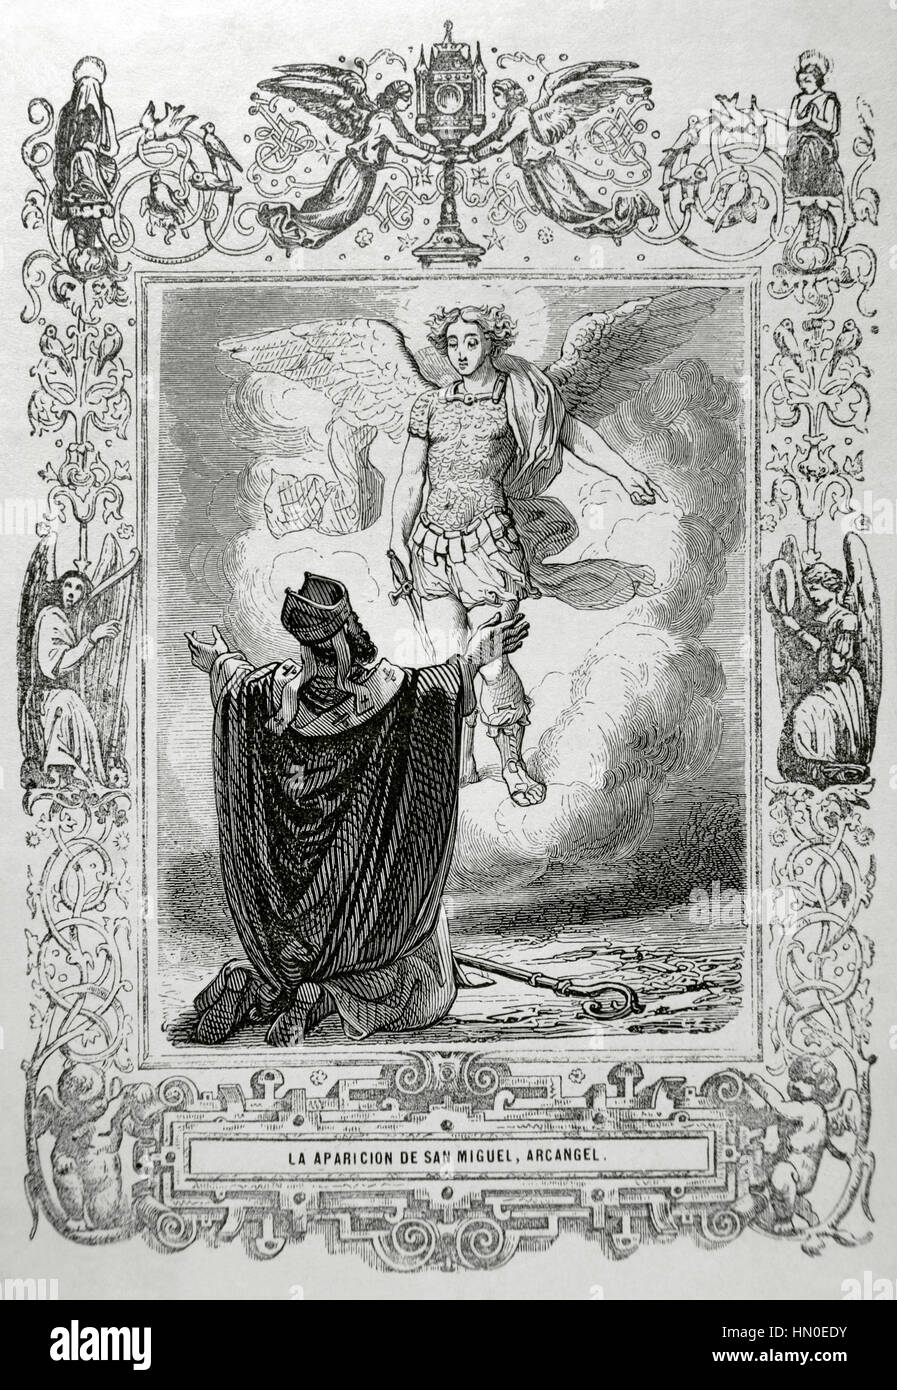 The Apparition of St. Michael the Archangel. Engraving by Capuz, 1852. - Stock Image